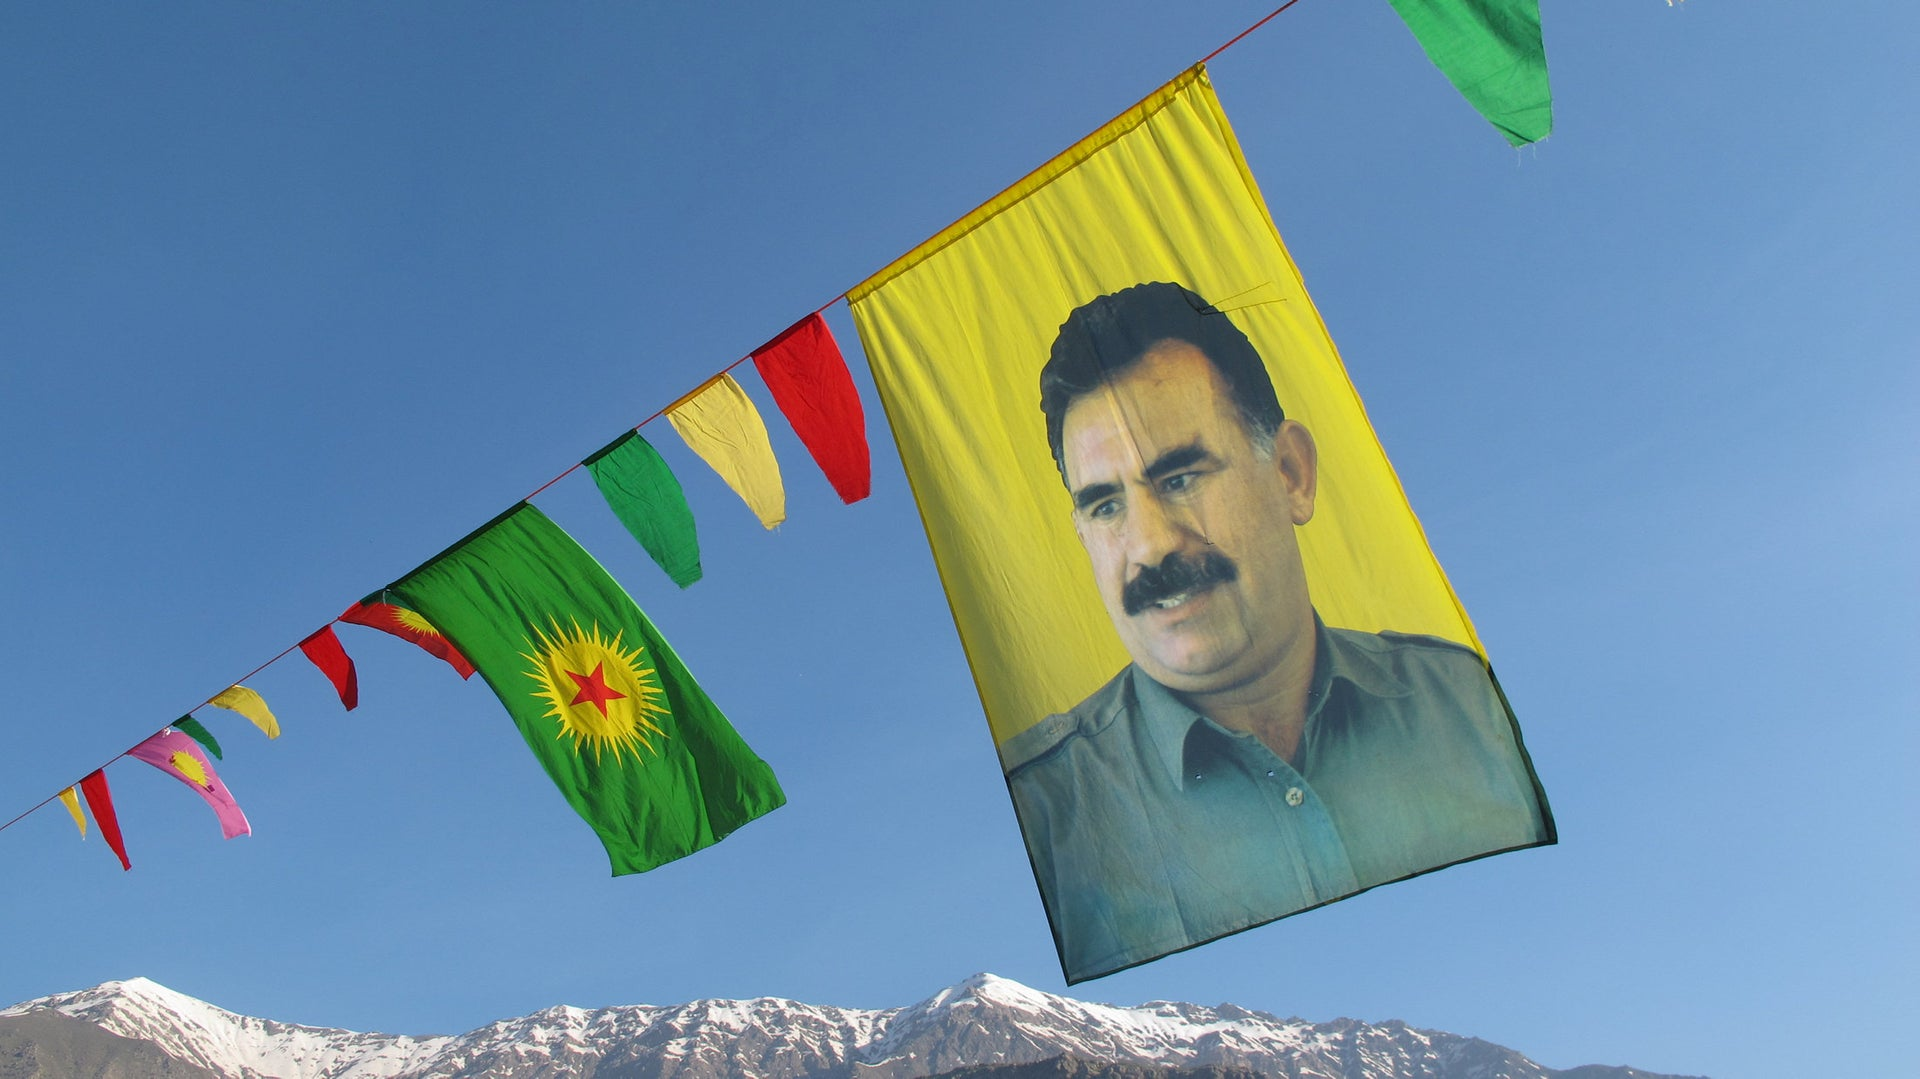 The Kurdish flag flies next to an image of Abdullah Öcalan, the leader of the PKK, who is serving a life sentence in a Turkish prison.